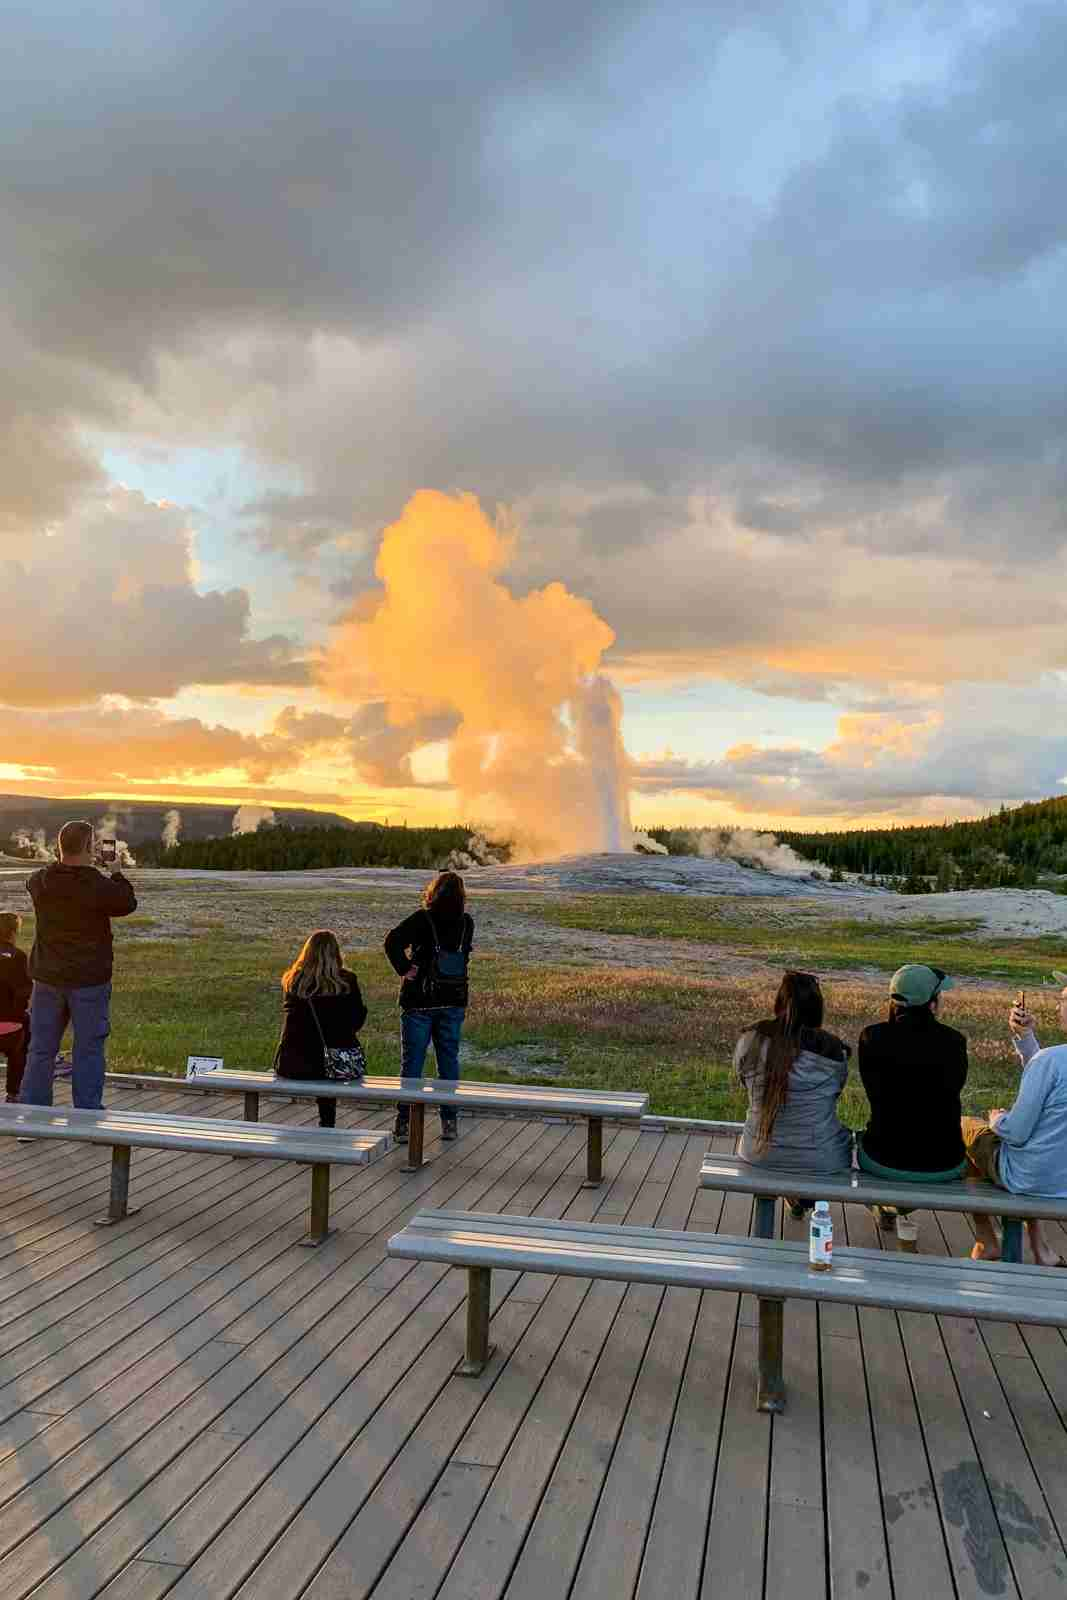 Yellowstone National Park June 2020. (Photo by Clint Henderson/The Points Guy)